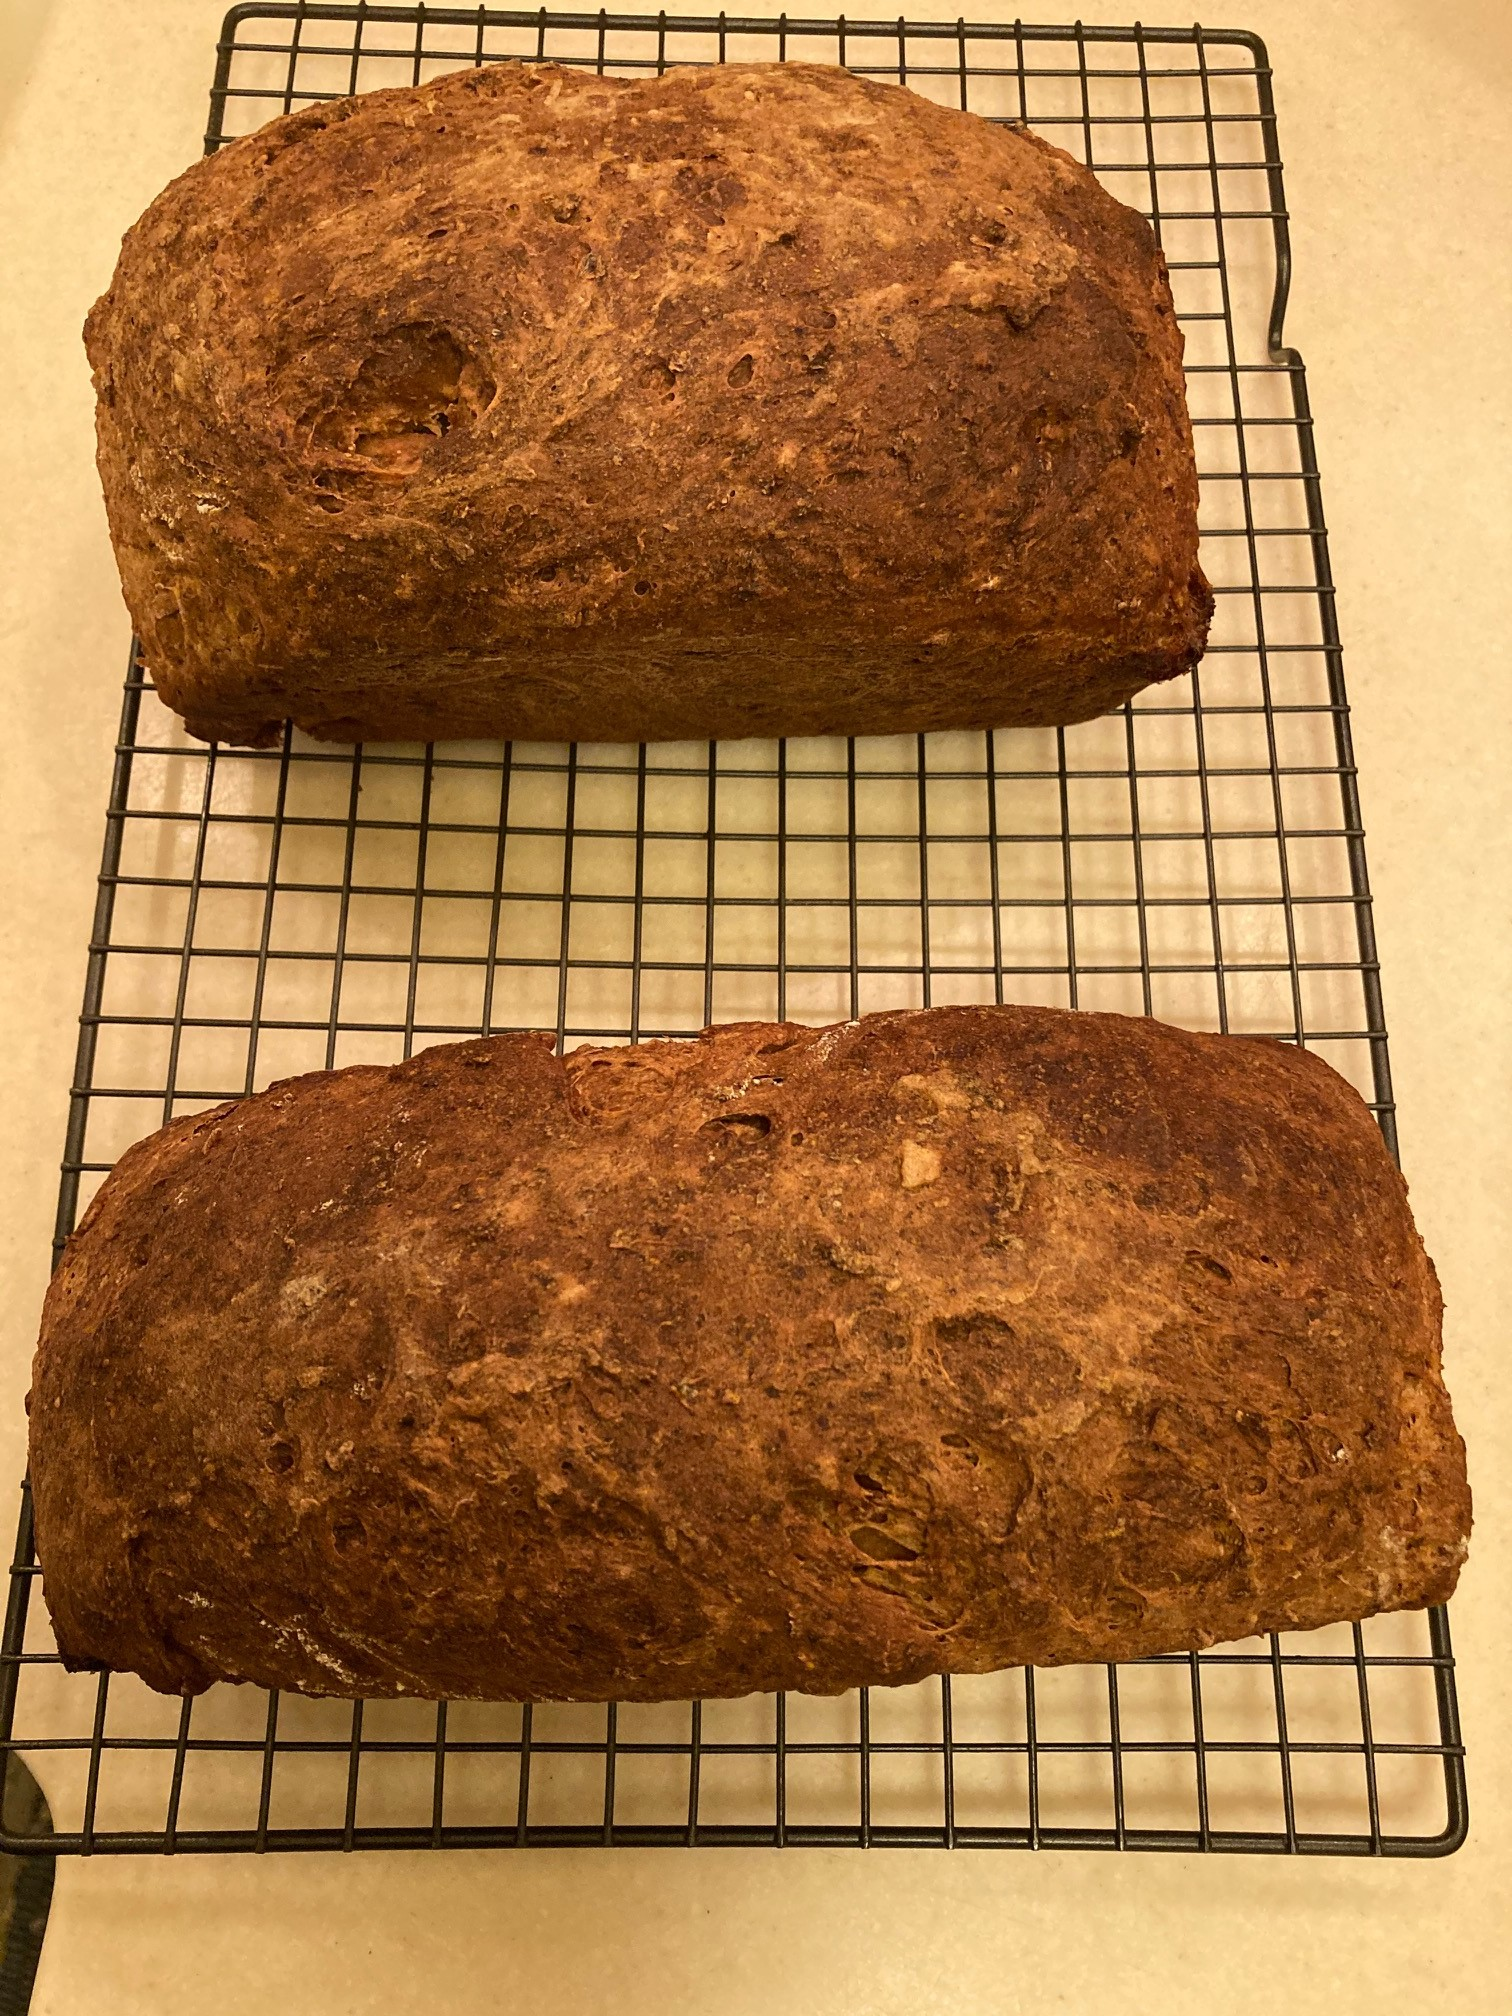 Two loaves of bread sit on a wire cooling rack.